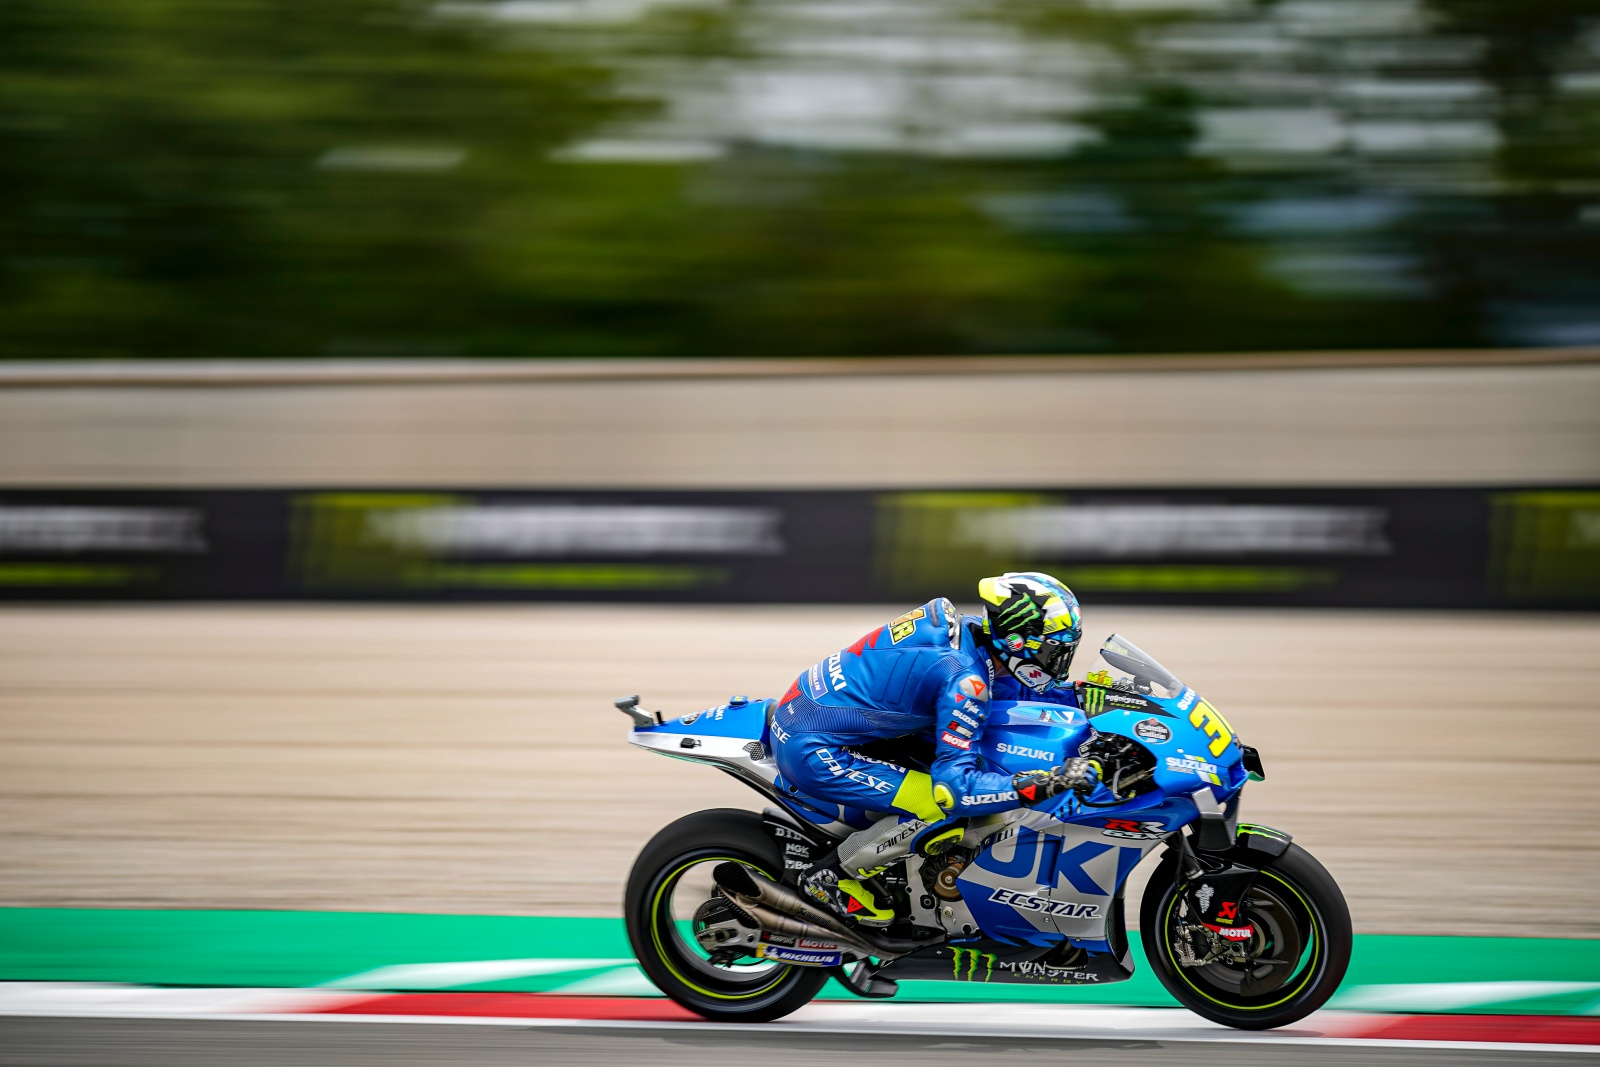 CALM AND CAREFUL START TO CATALUNYA WEEKEND FOR MIR